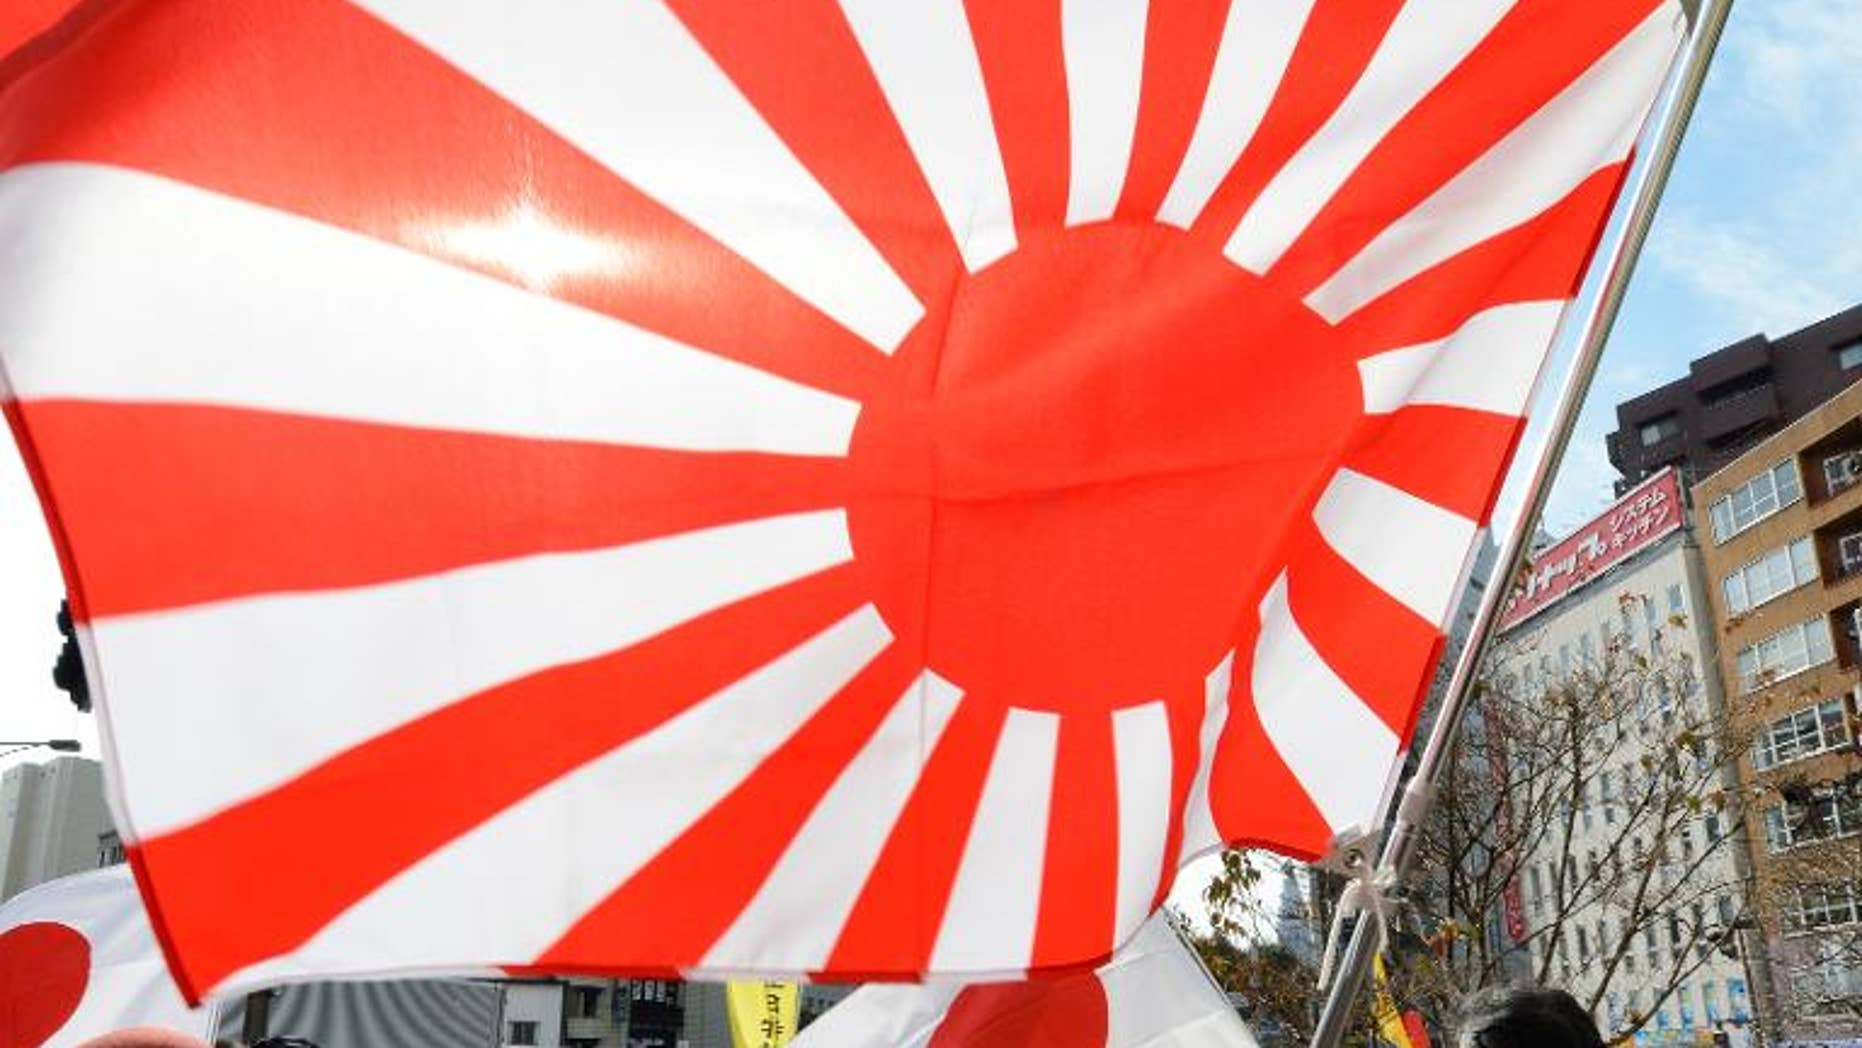 """Members of a nationalist group hold a """"Rising Sun"""" flag at a rally in Tokyo on February 22, 2013 over the disputed Takeshima/Dokdo islands"""